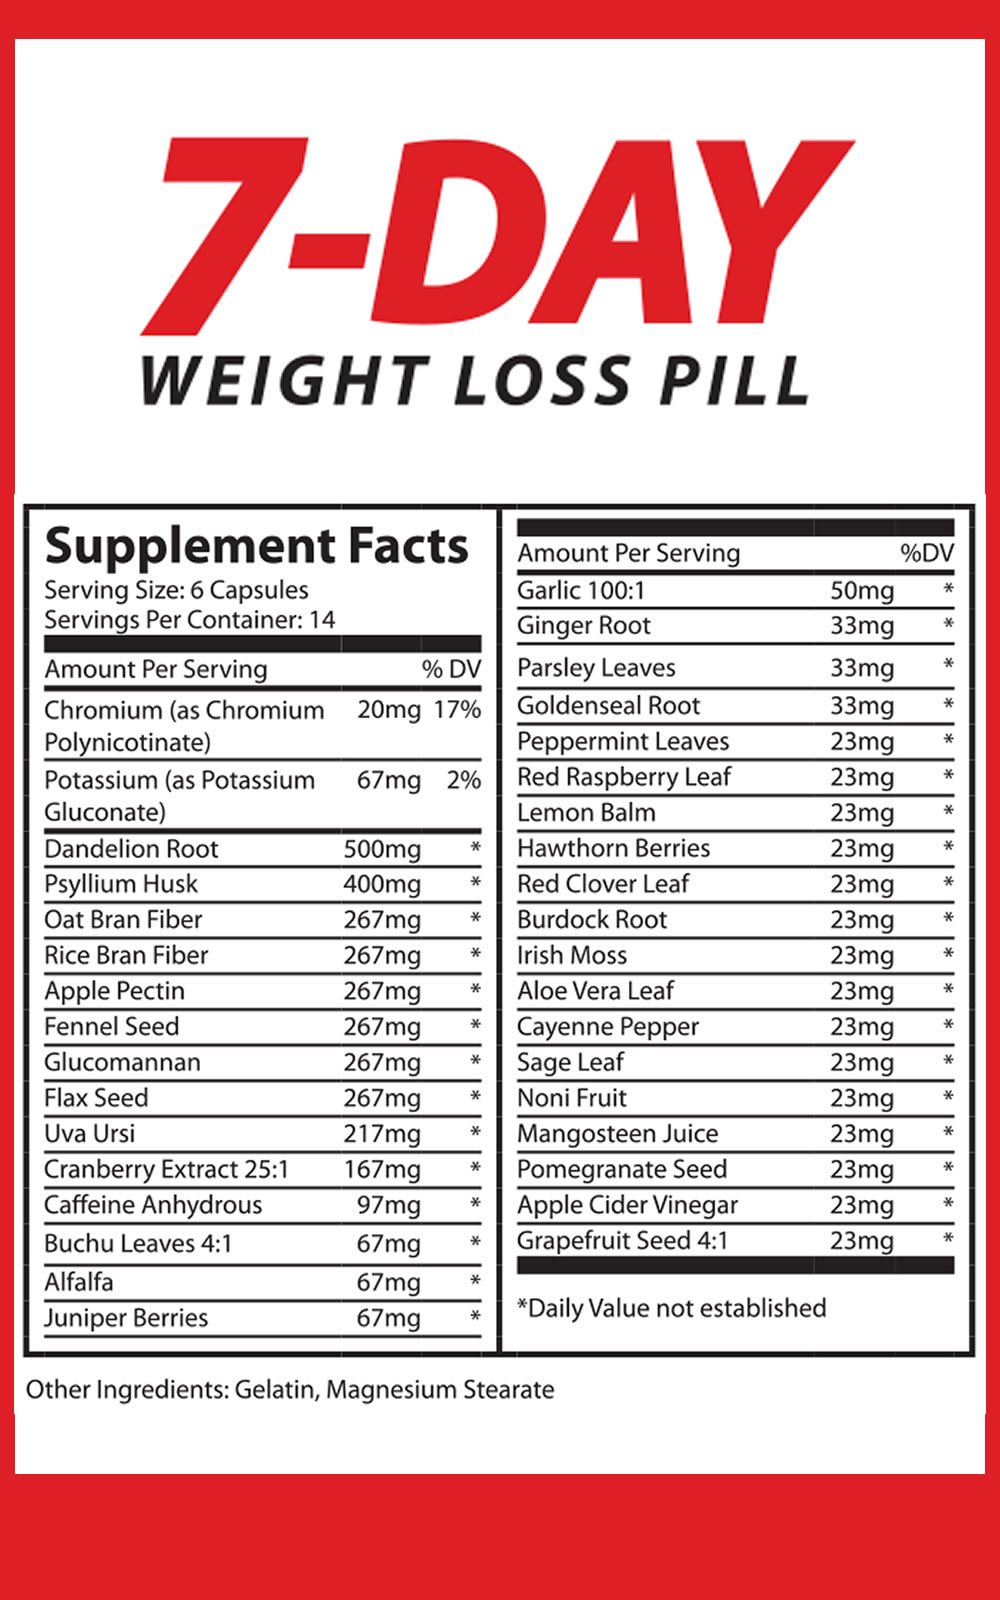 7 Day Weight Loss Pill - 7 day Weight Loss Plan - Weight ...